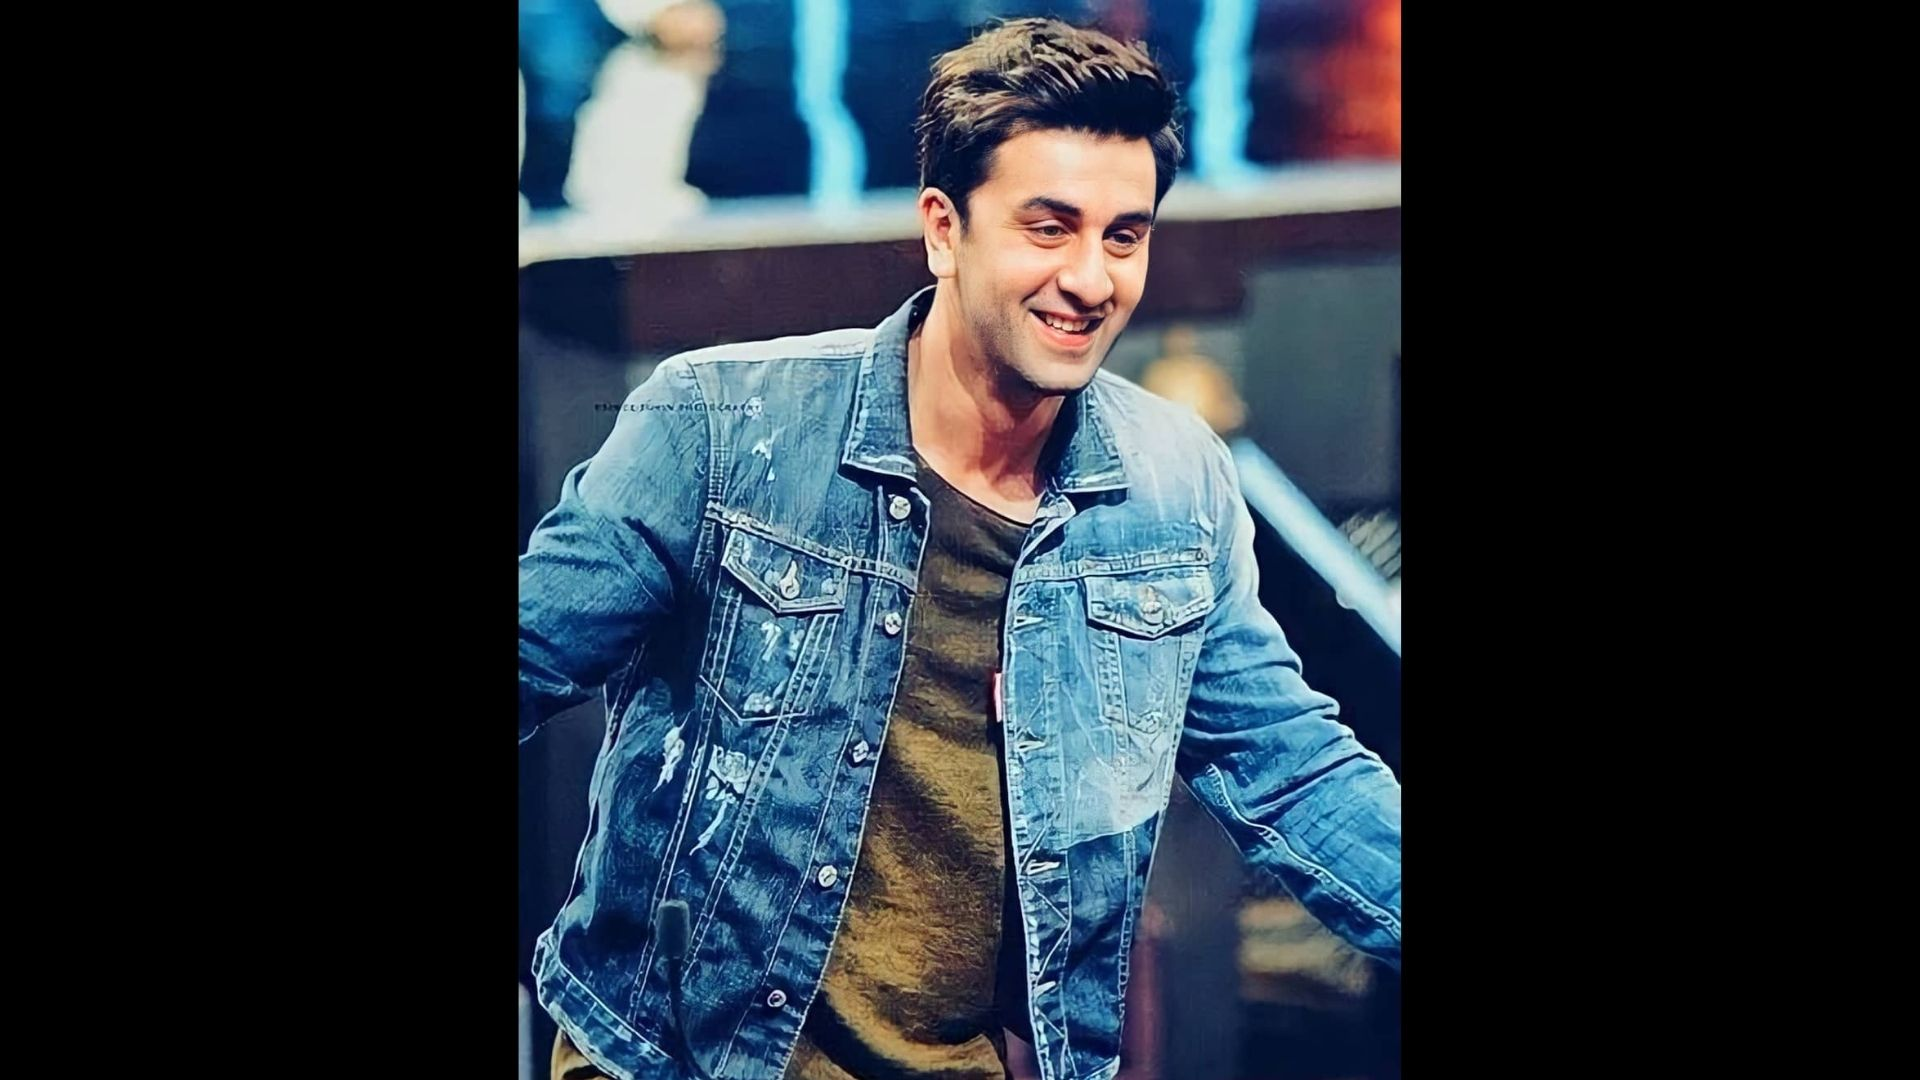 Ranbir Kapoor Kicks-off Weekend With Dance Session; Shows Victory Sign Post The Session In Style